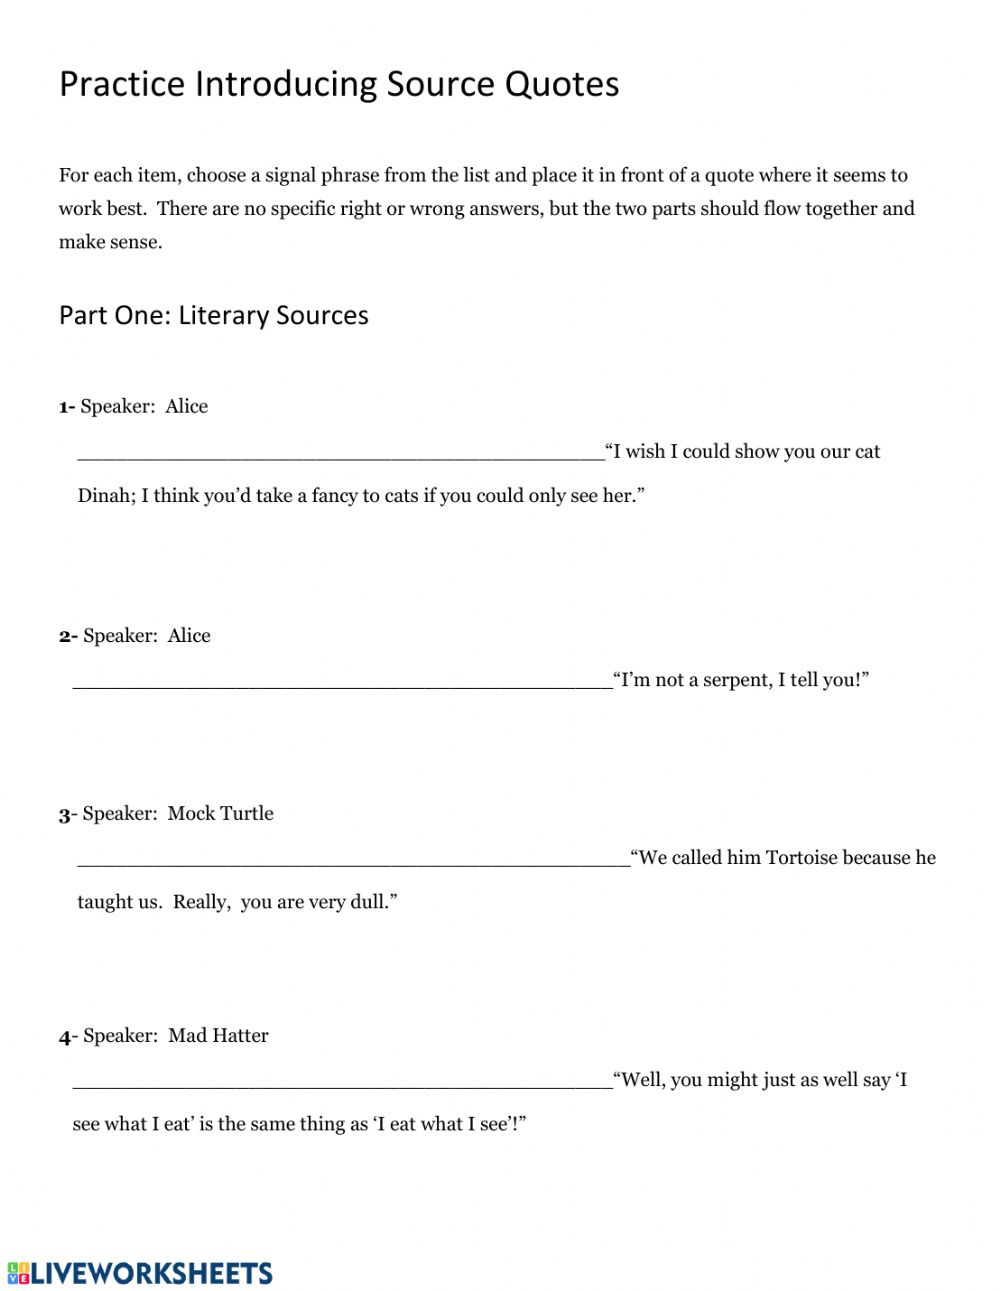 Practice with signal phrases in writing - Interactive worksheet